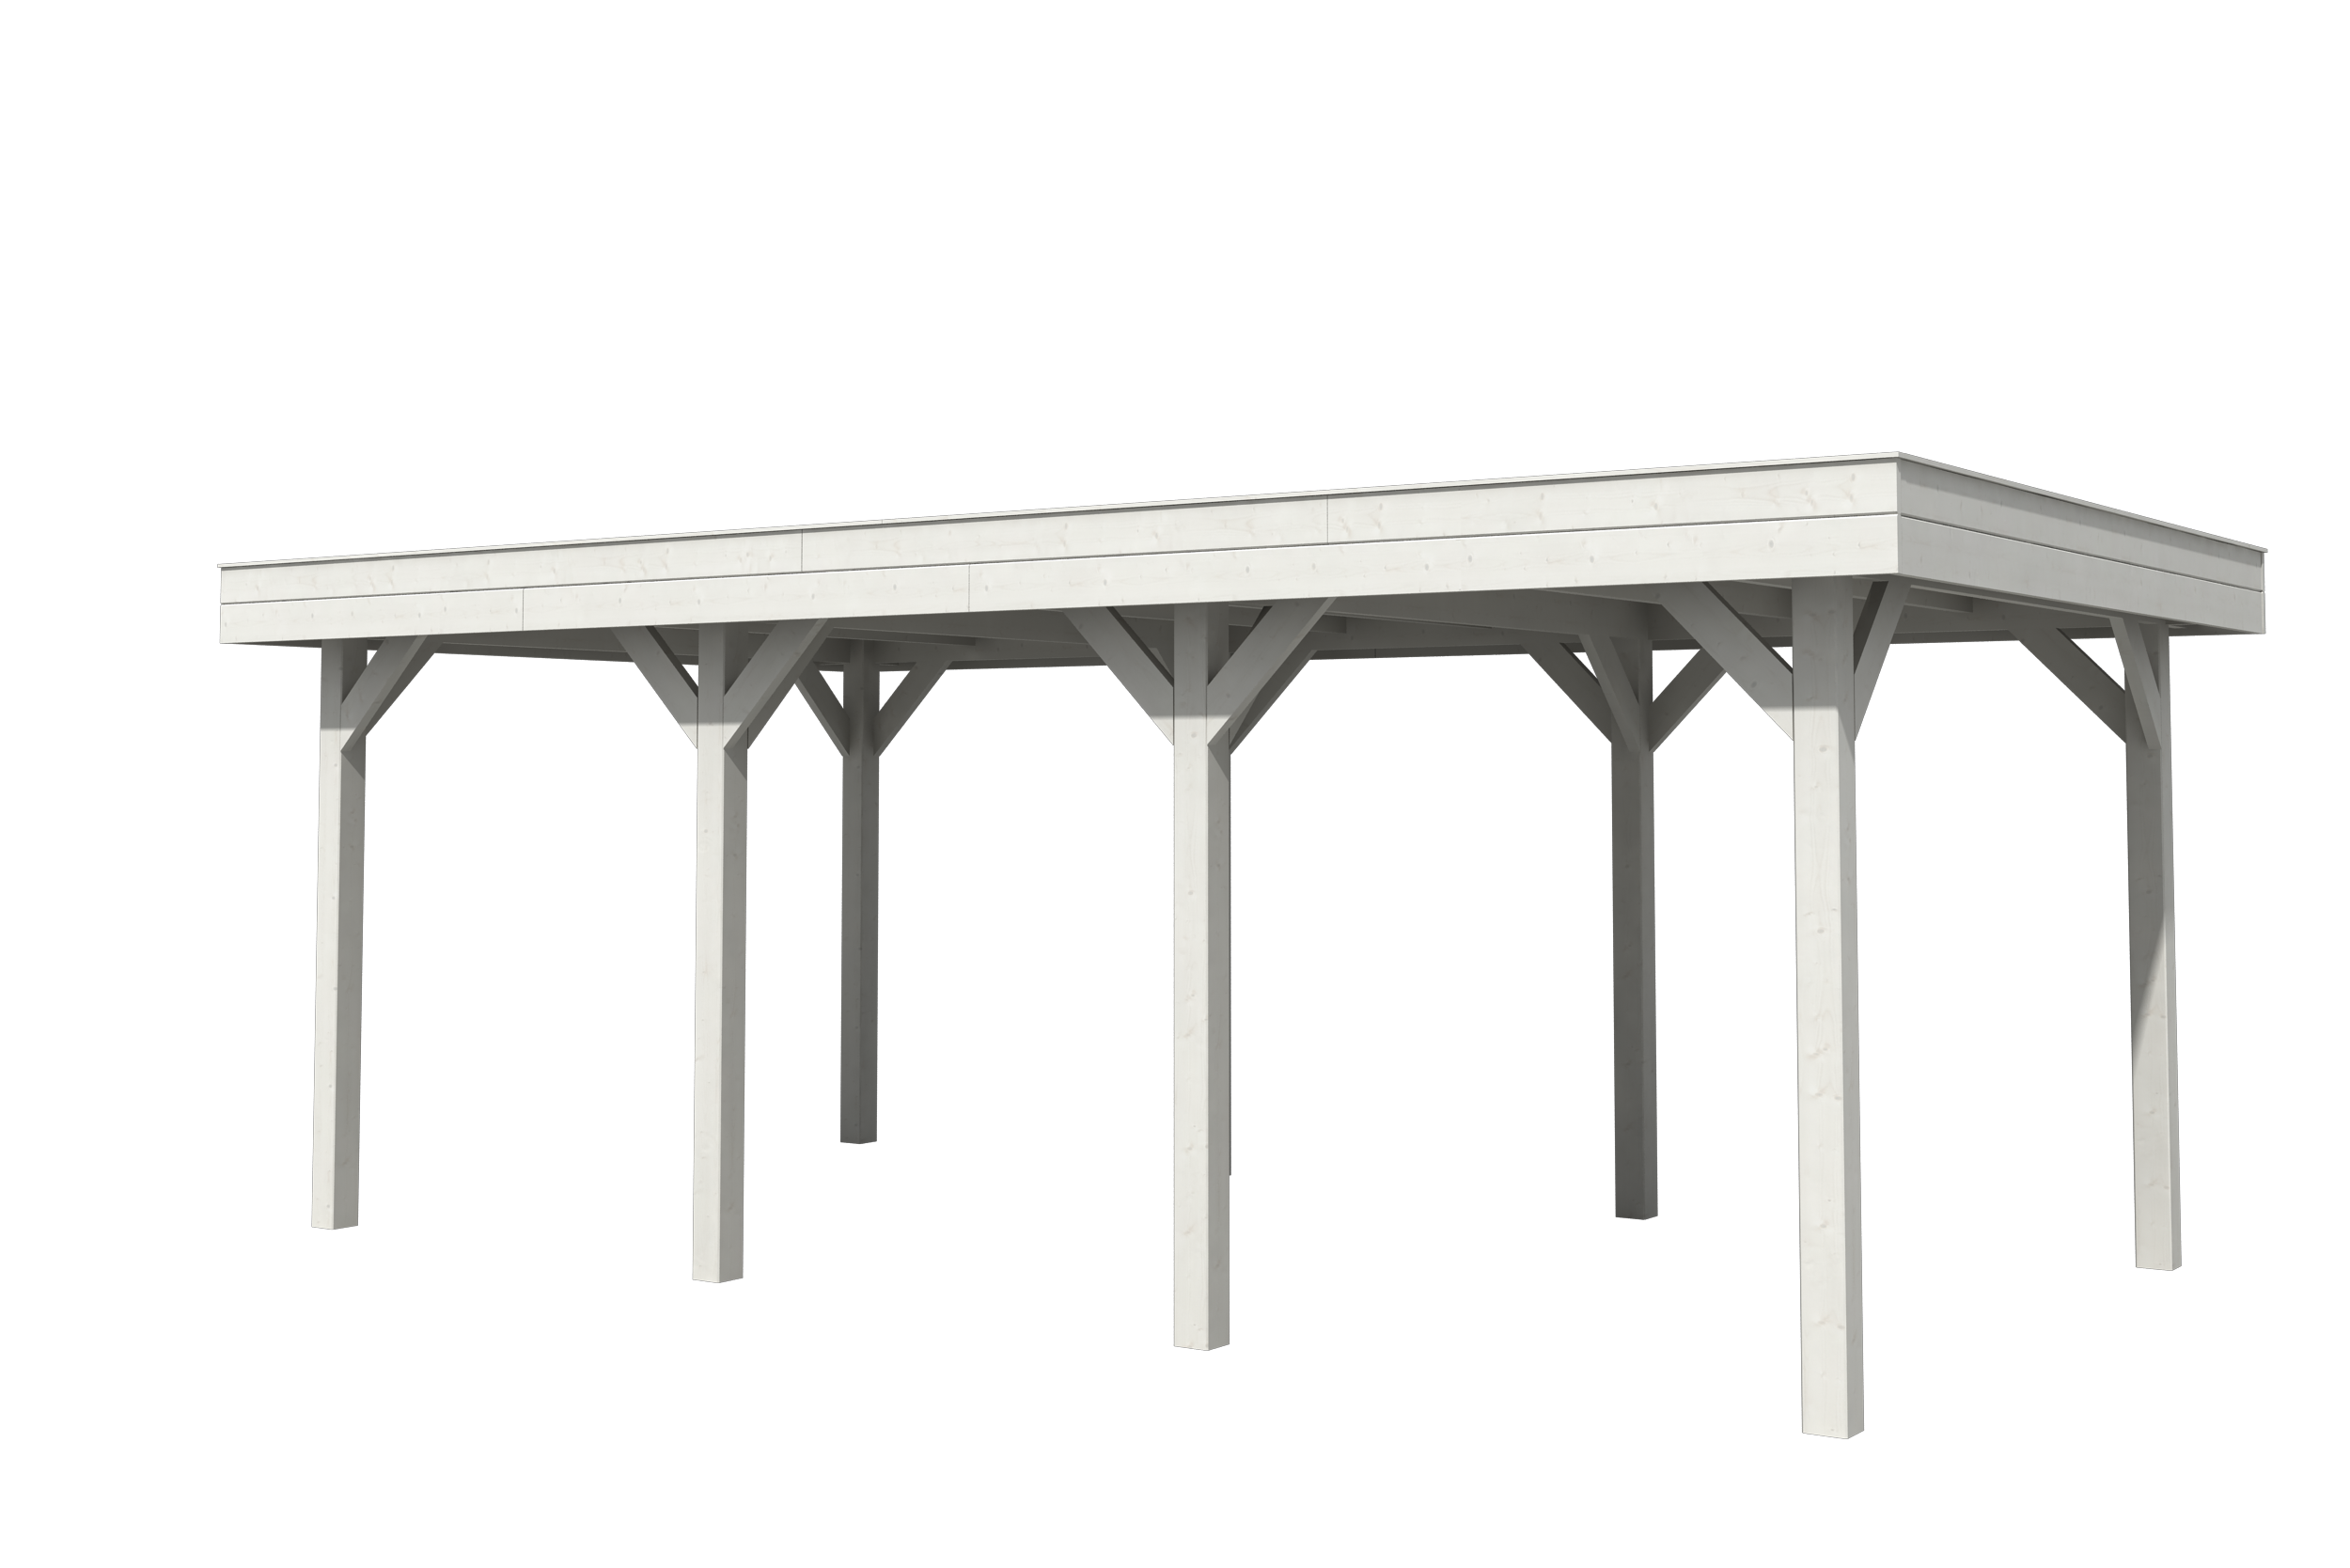 Westwood | Outdoor Living 6030 20 | Pearl White | 588x304 cm